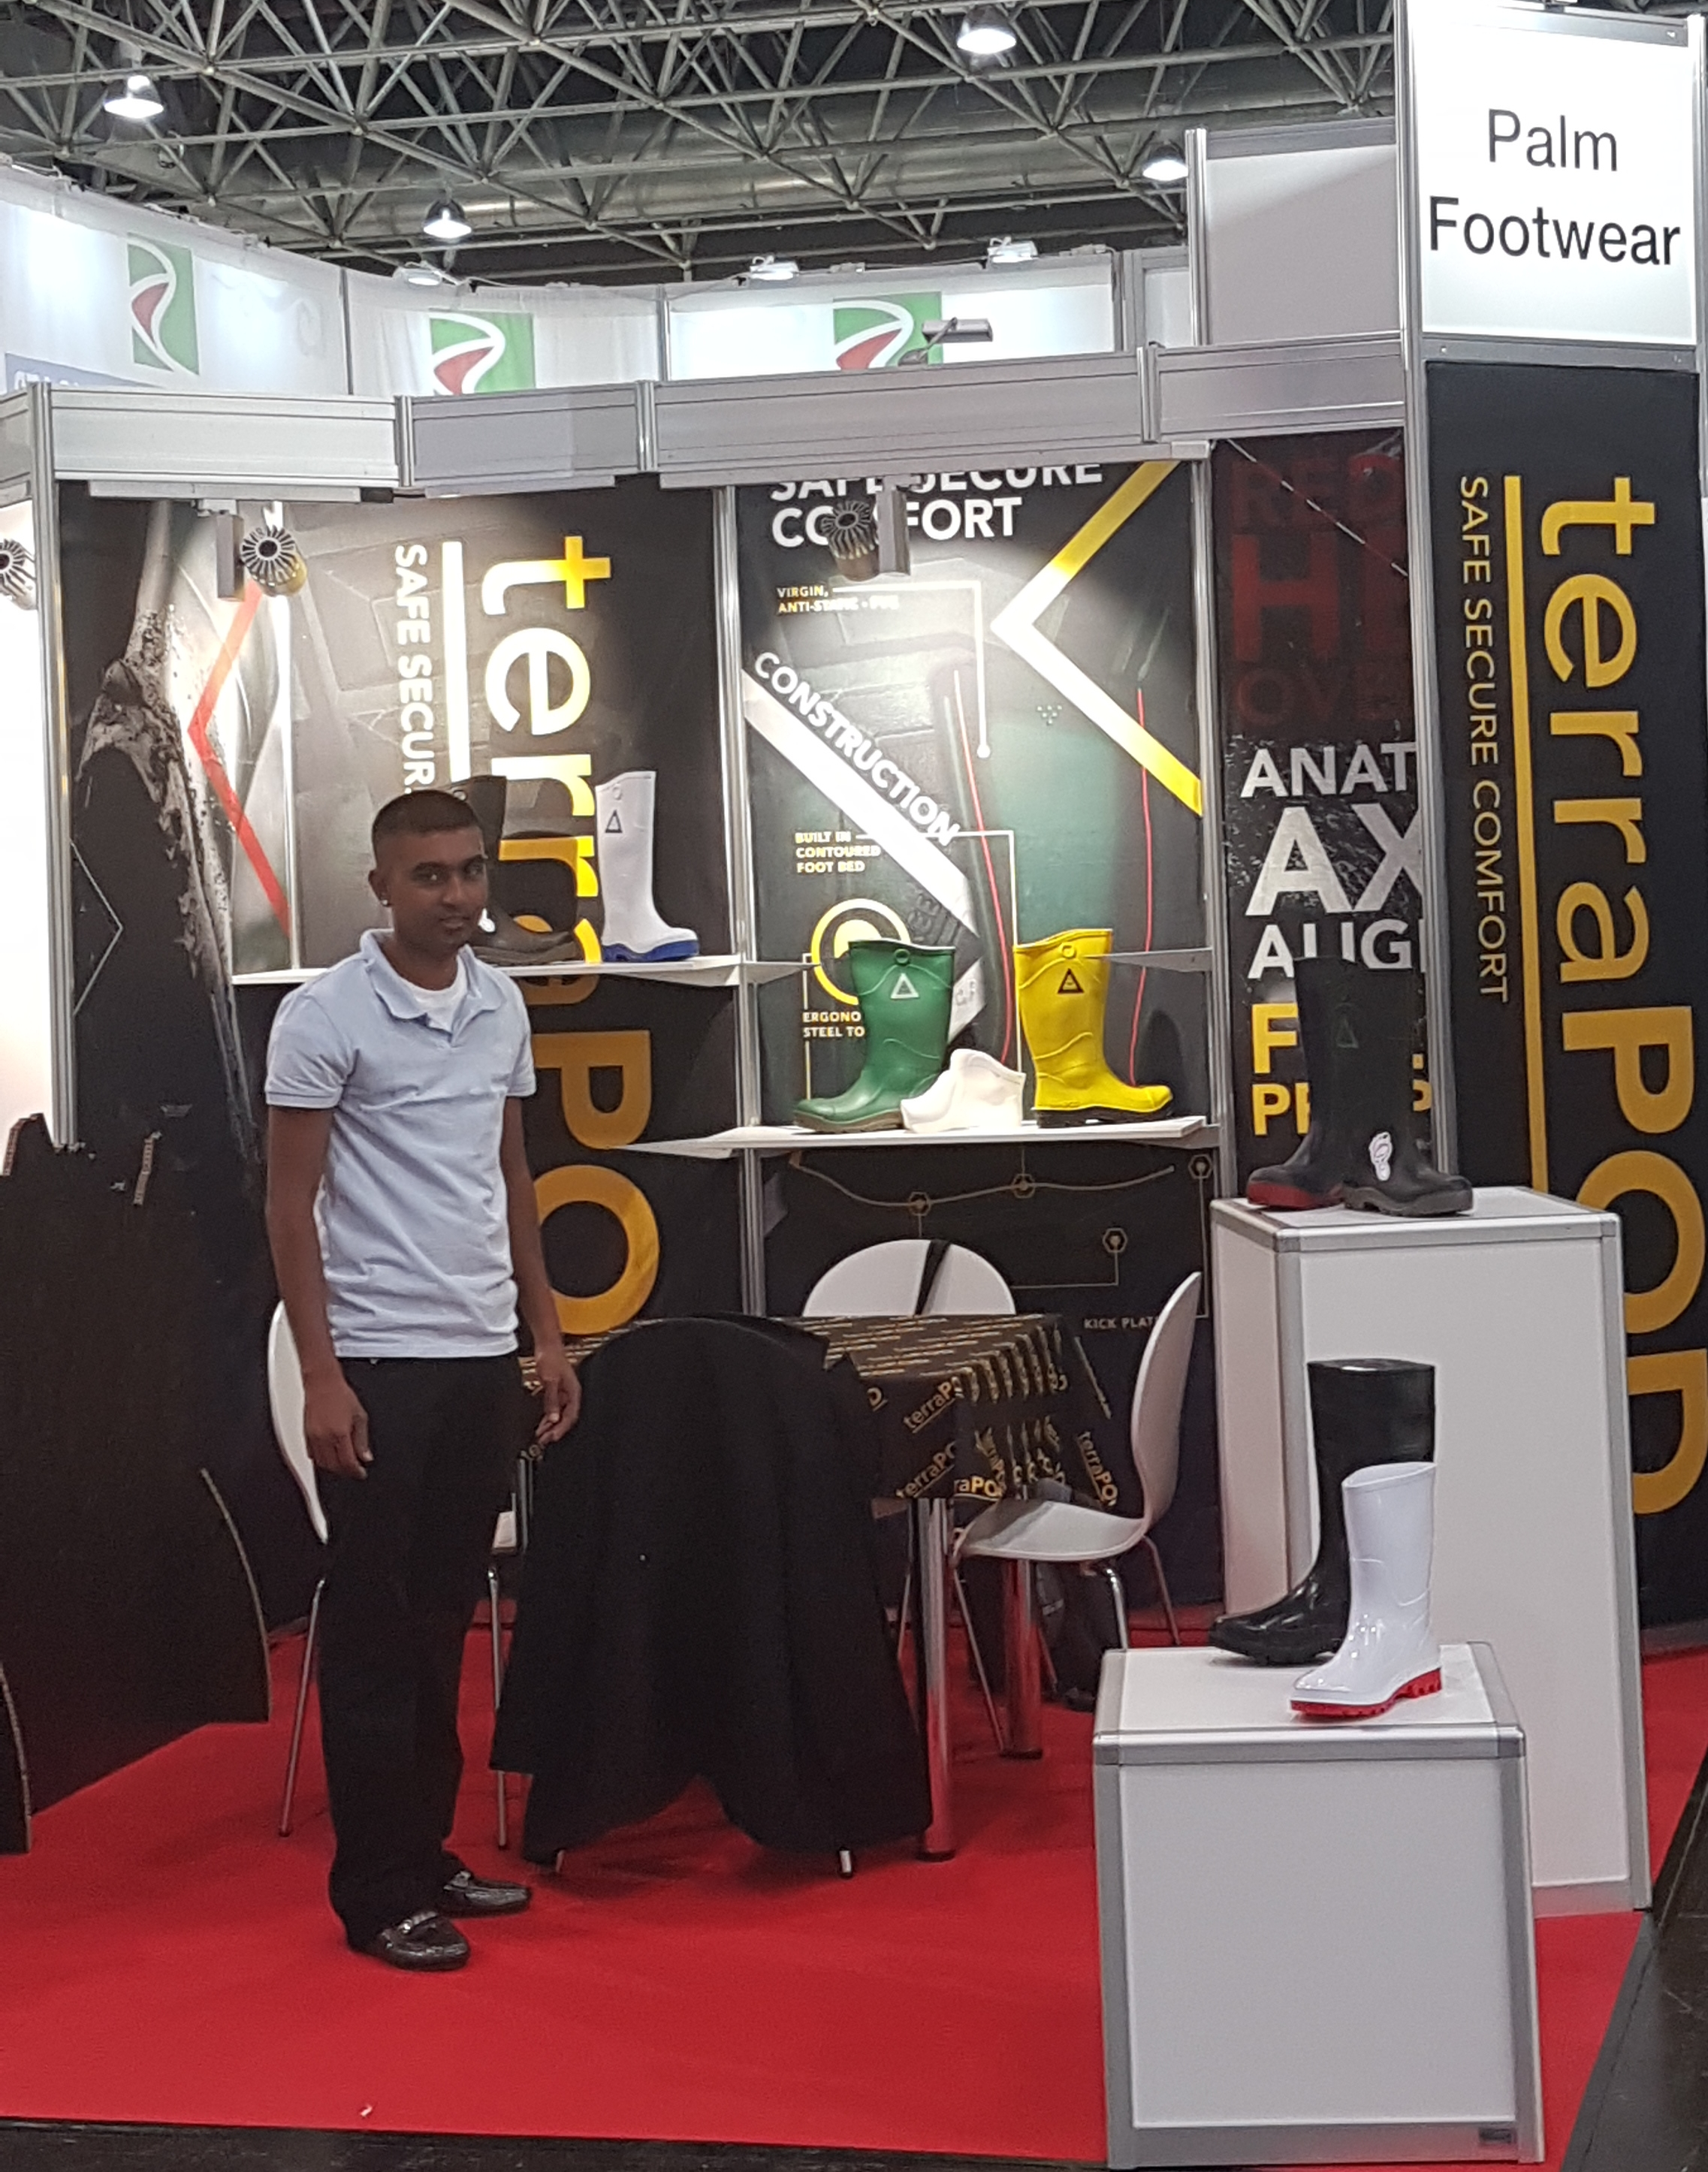 Palm Footwear stand